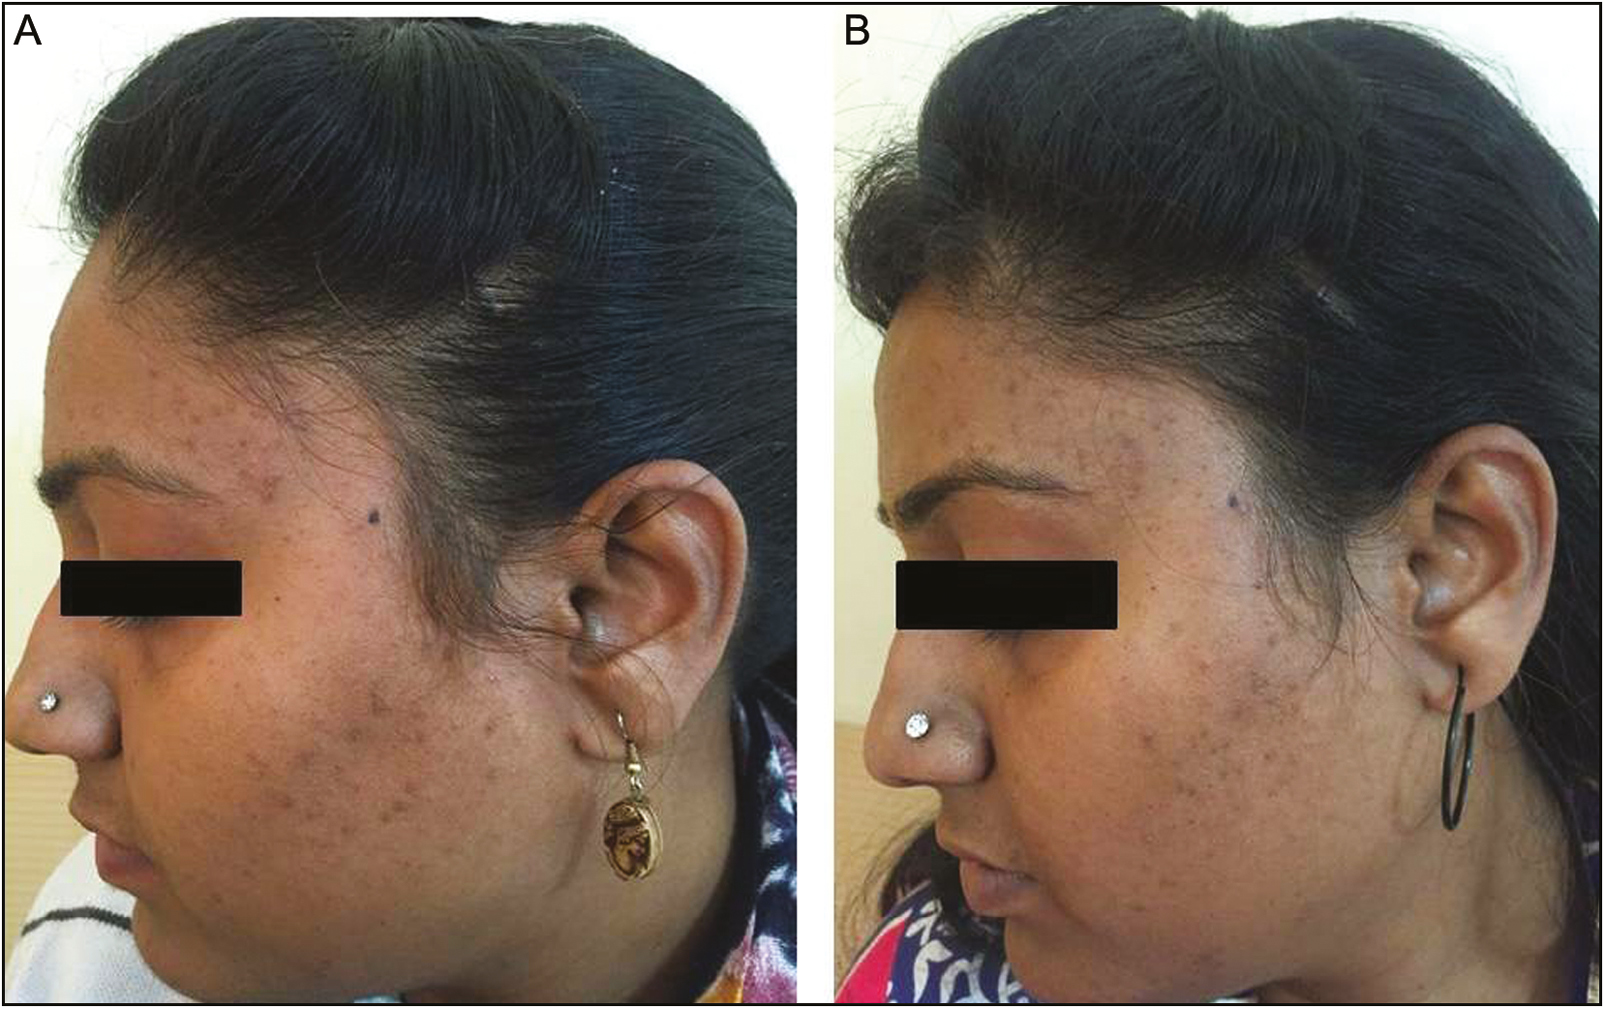 Figure 2: Images (A) and (B) show the baseline and 12-week results with 20% salicylic–10% mandelic acid peel combination